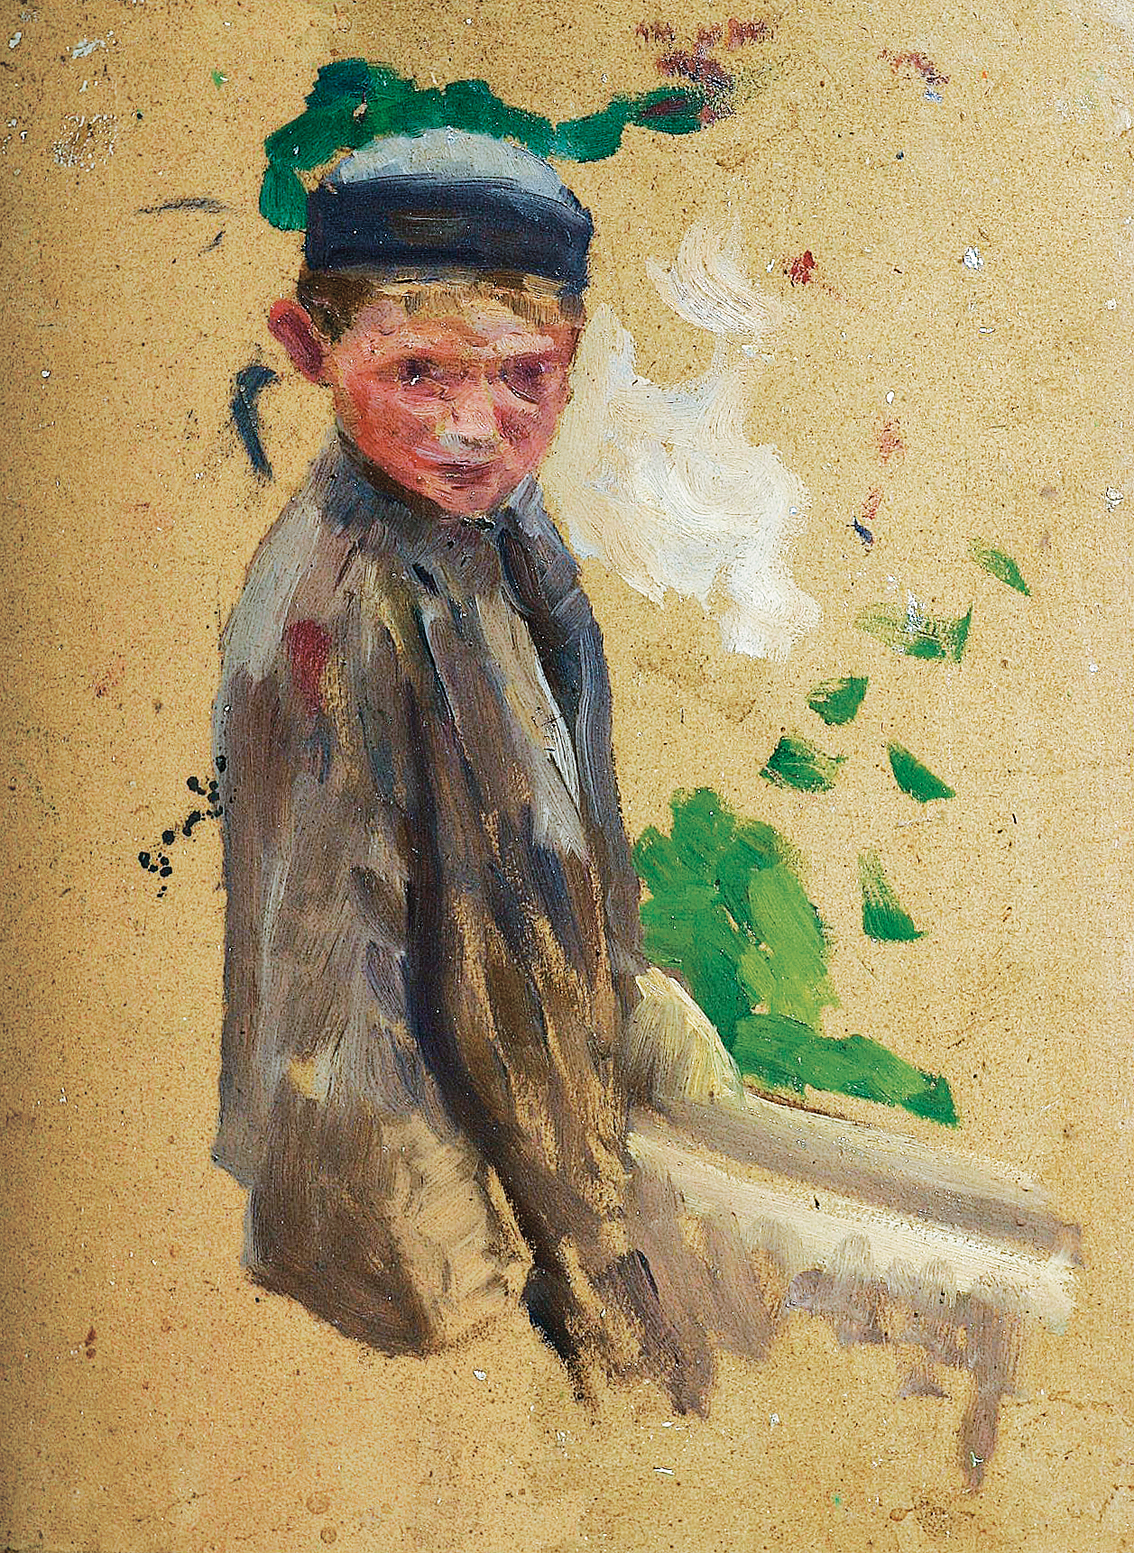 A boy with a cap